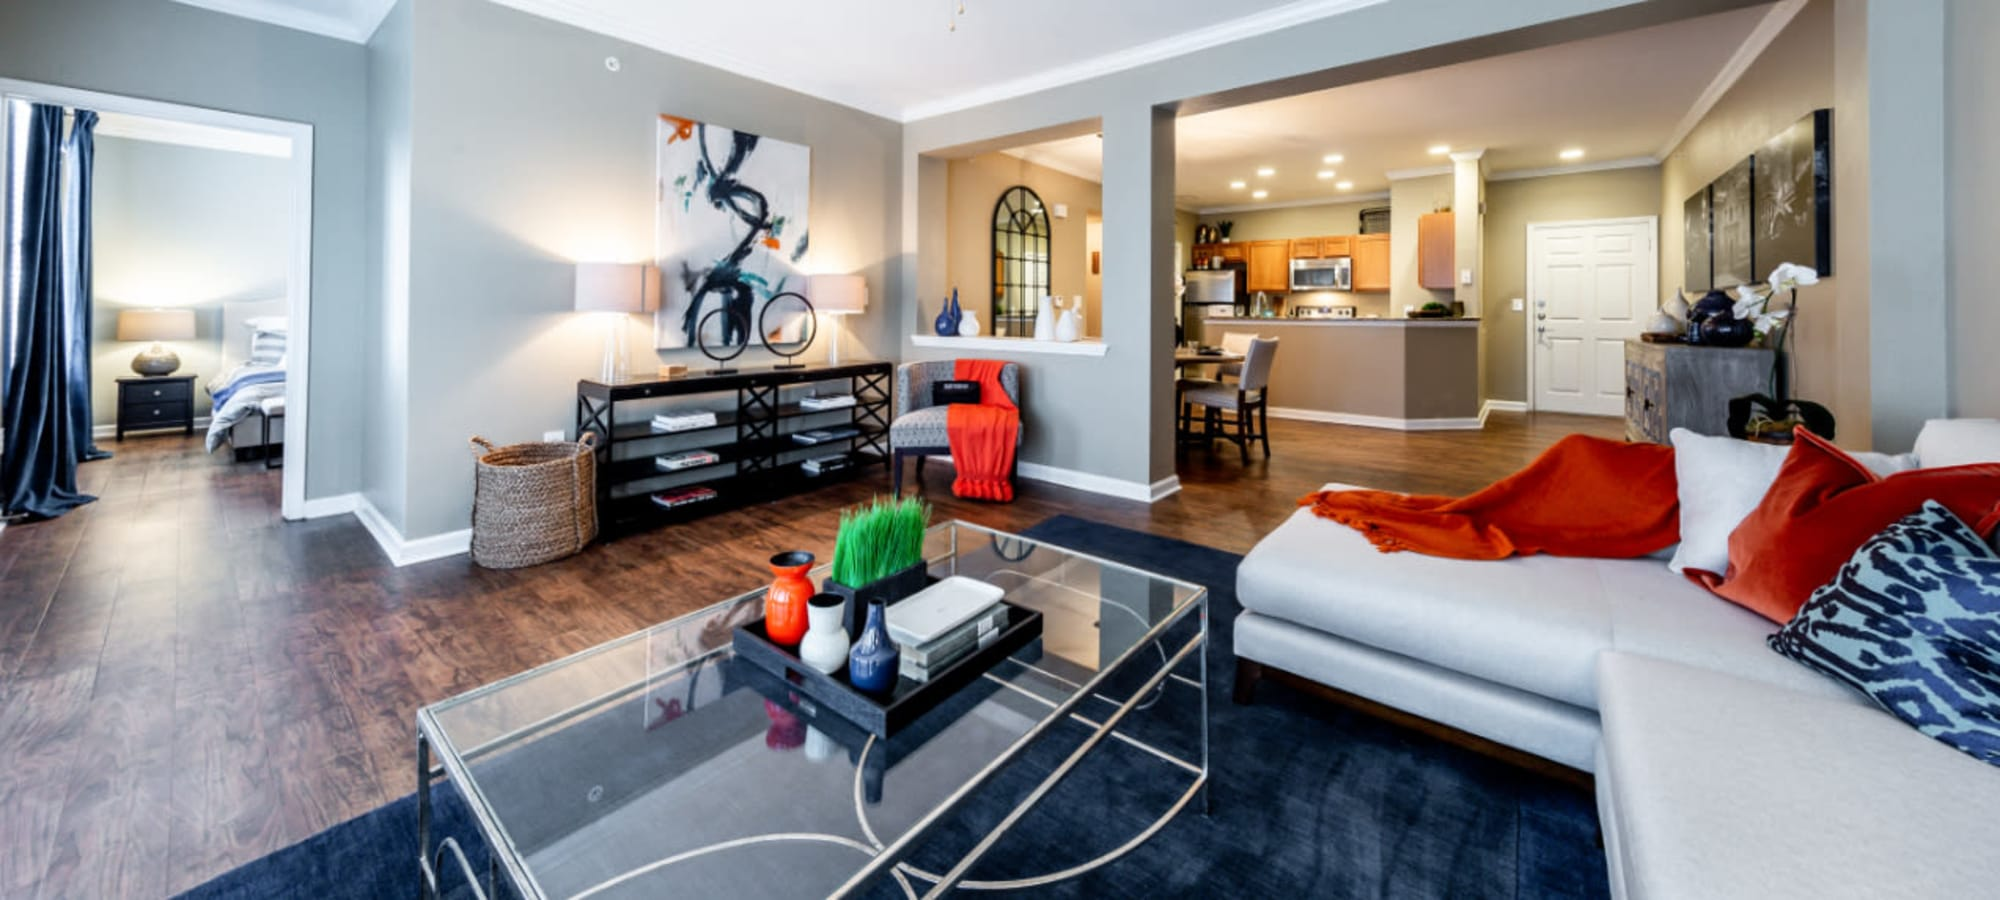 Apply to live at Marquis at Stone Oak in San Antonio, Texas